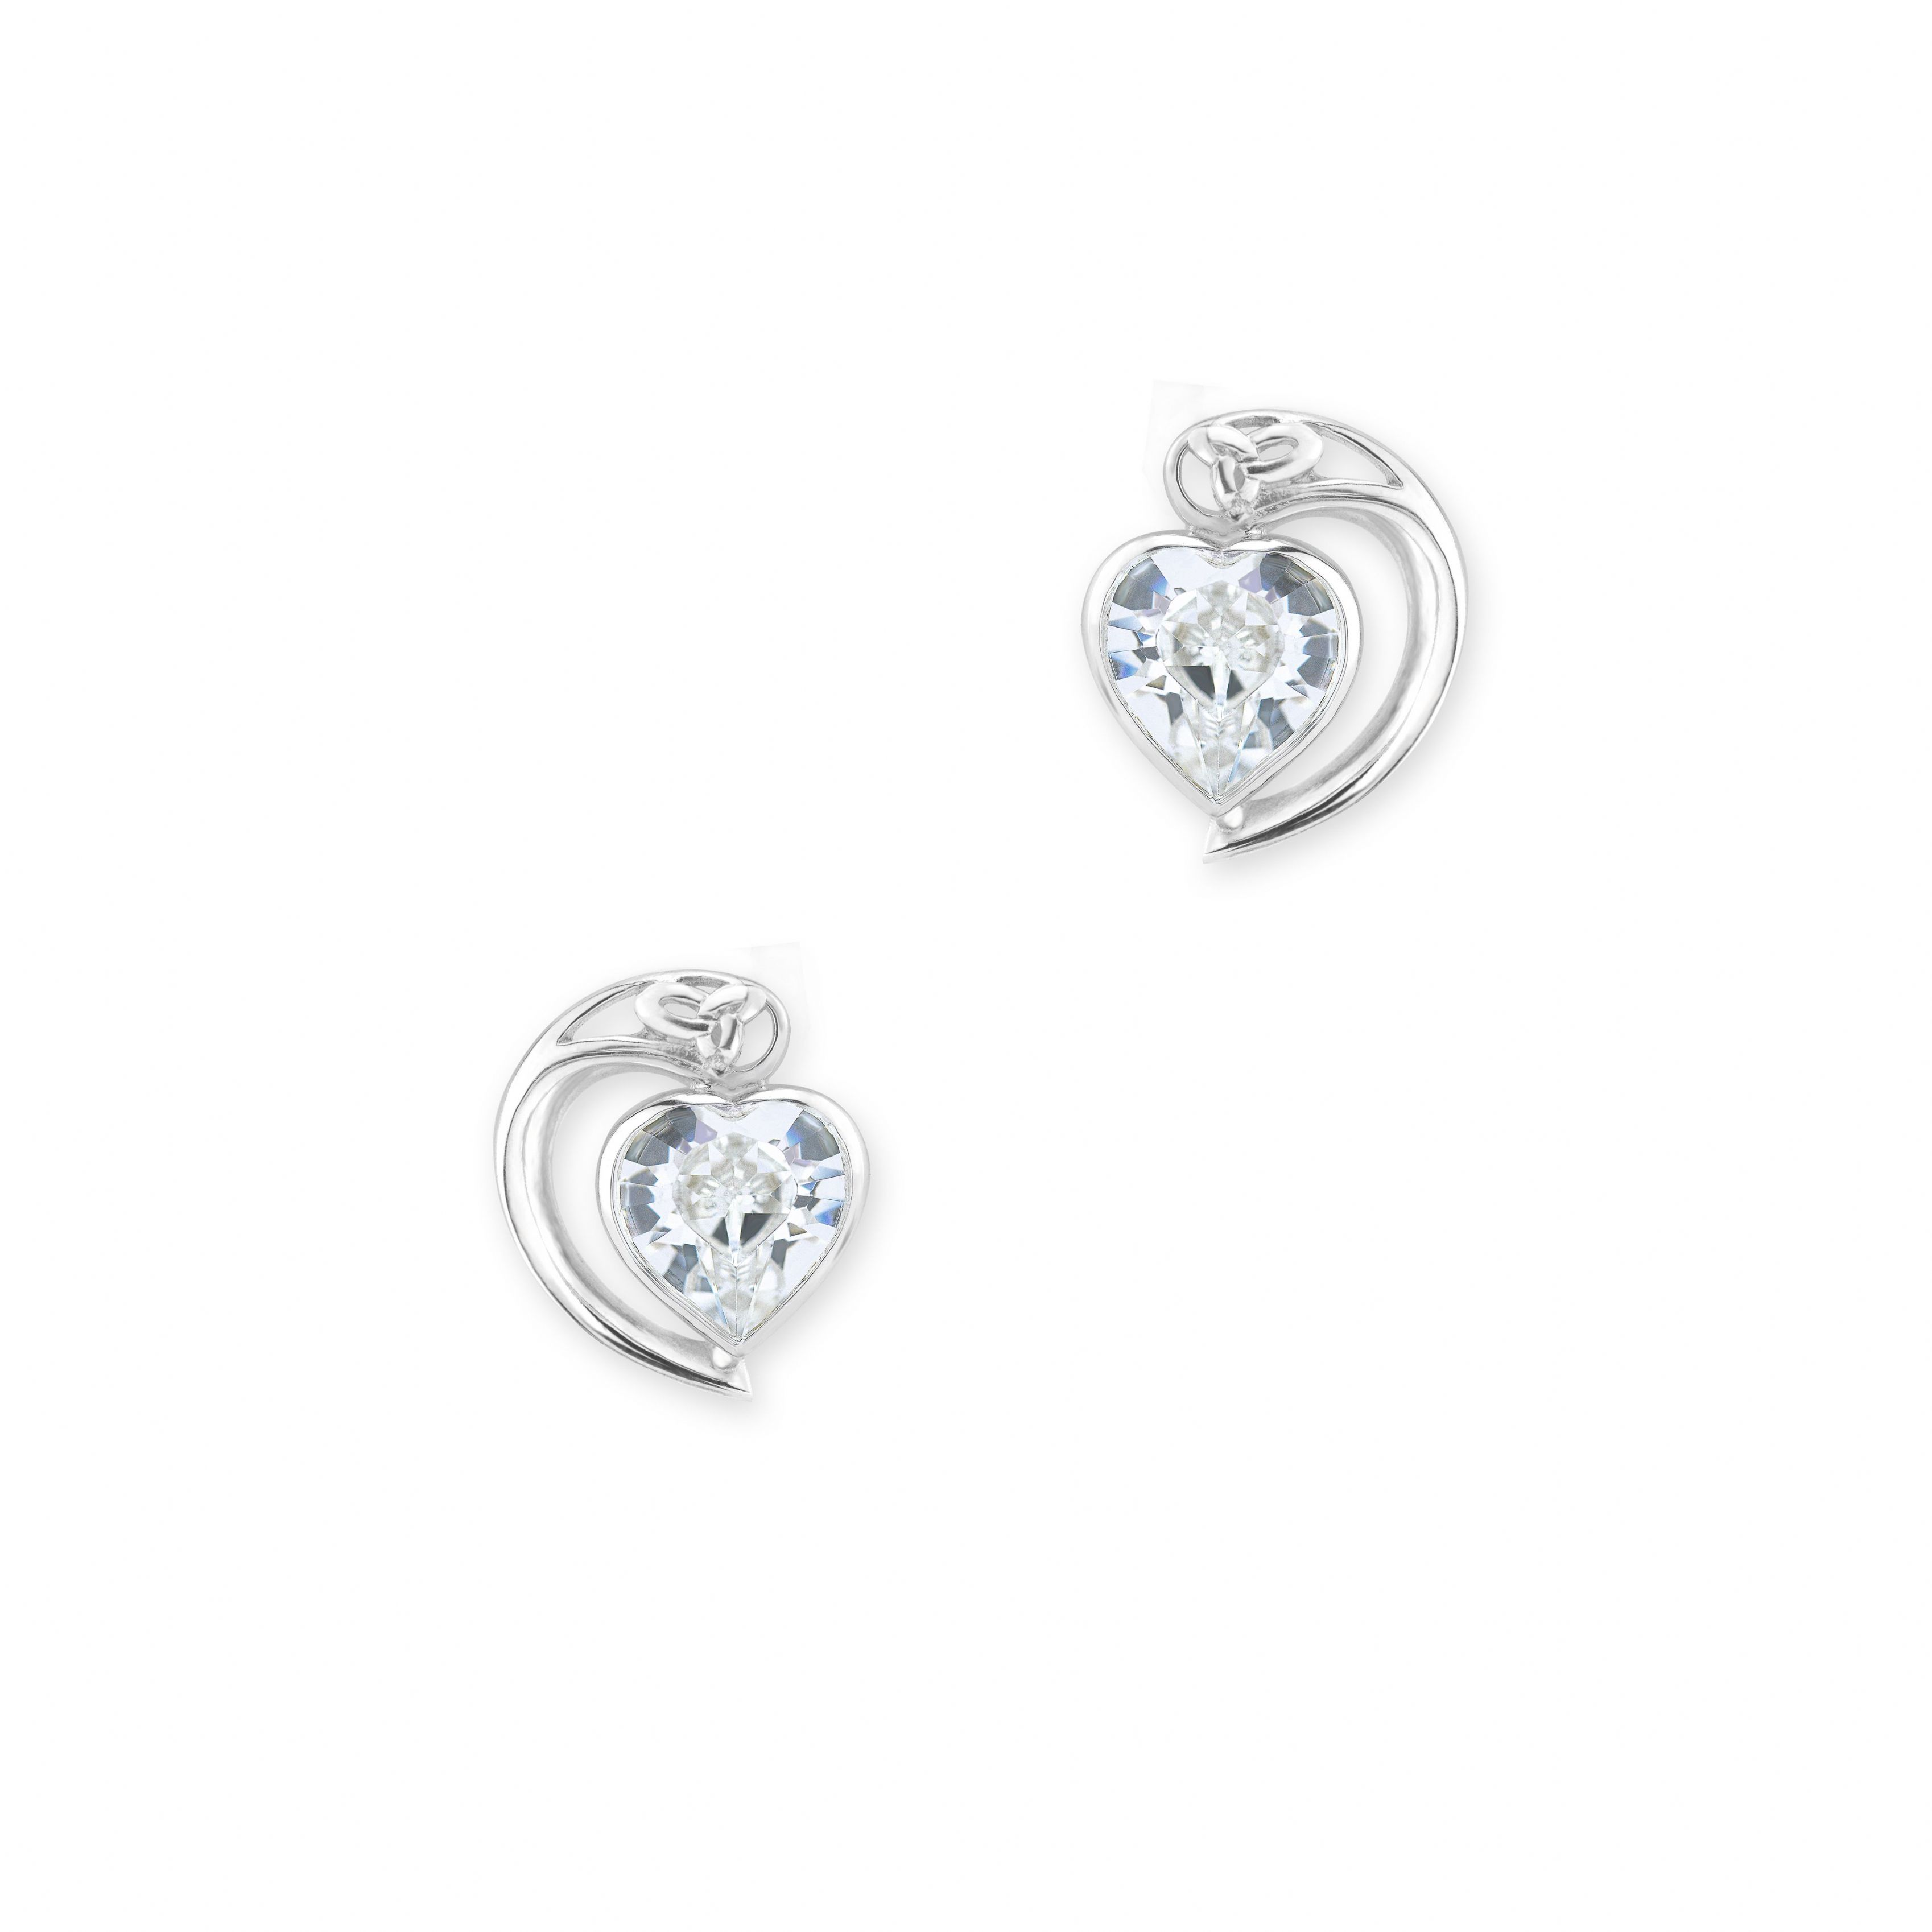 Silver prices today chart - silver earrings jewellery prices